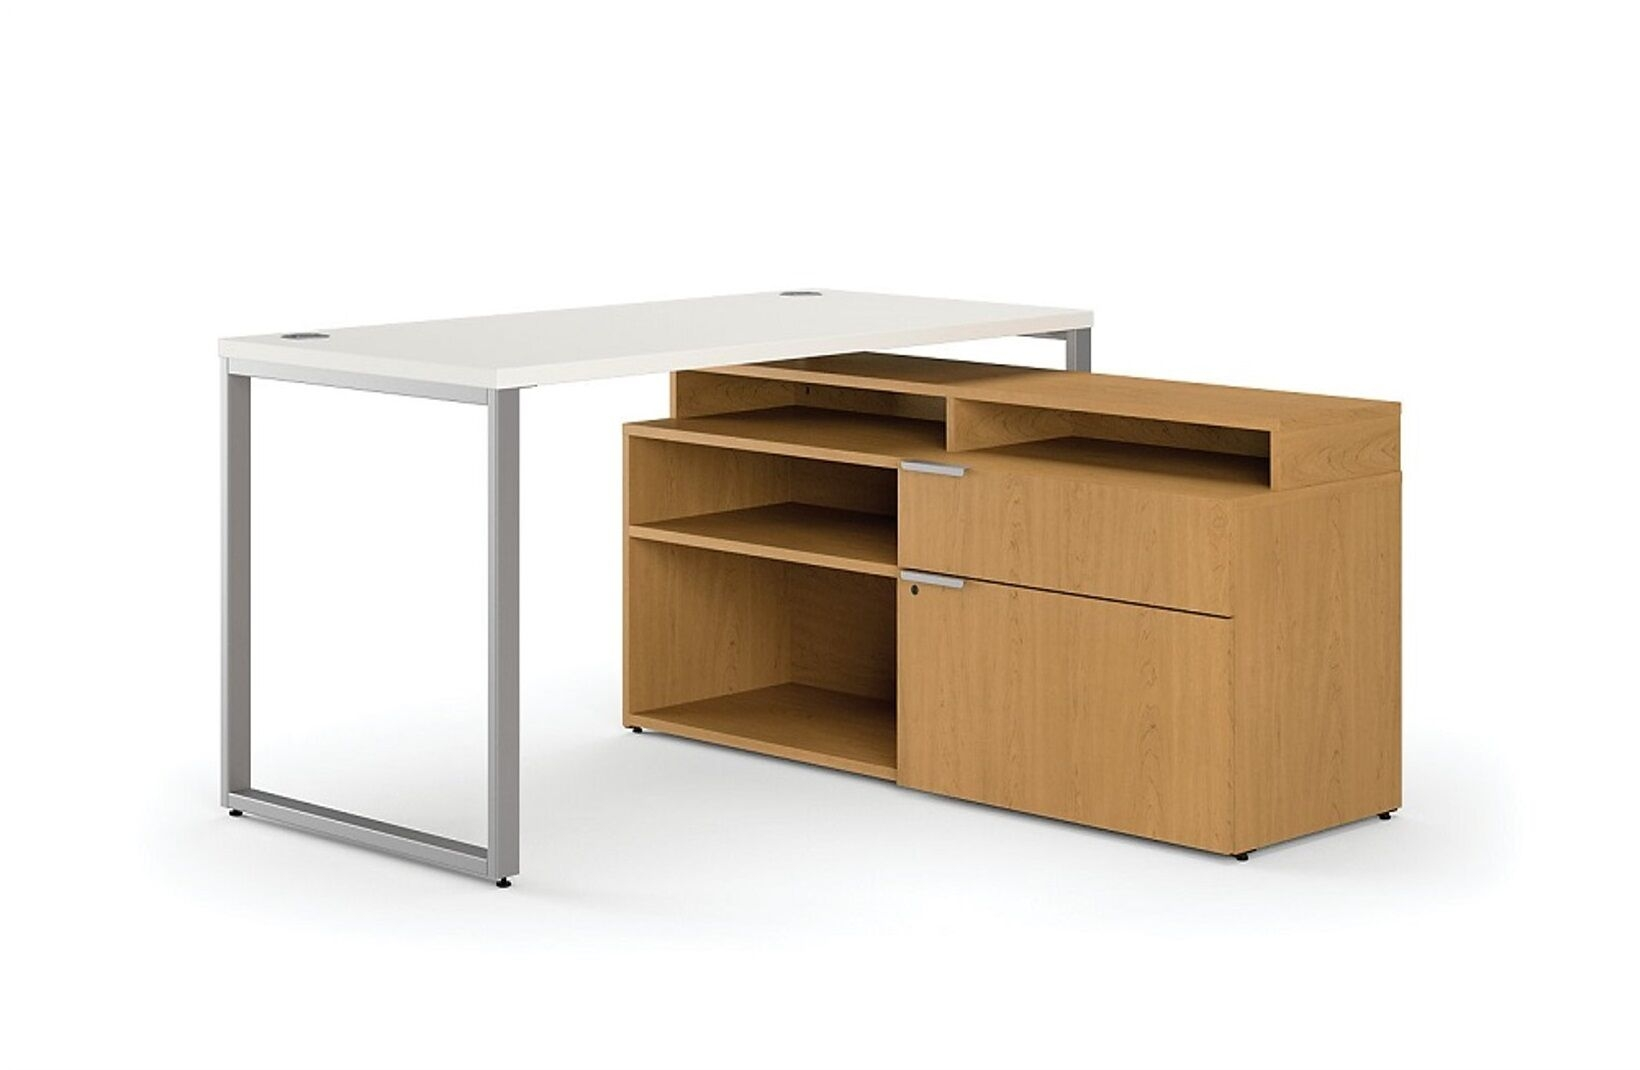 Lshaped Desk With Drawers